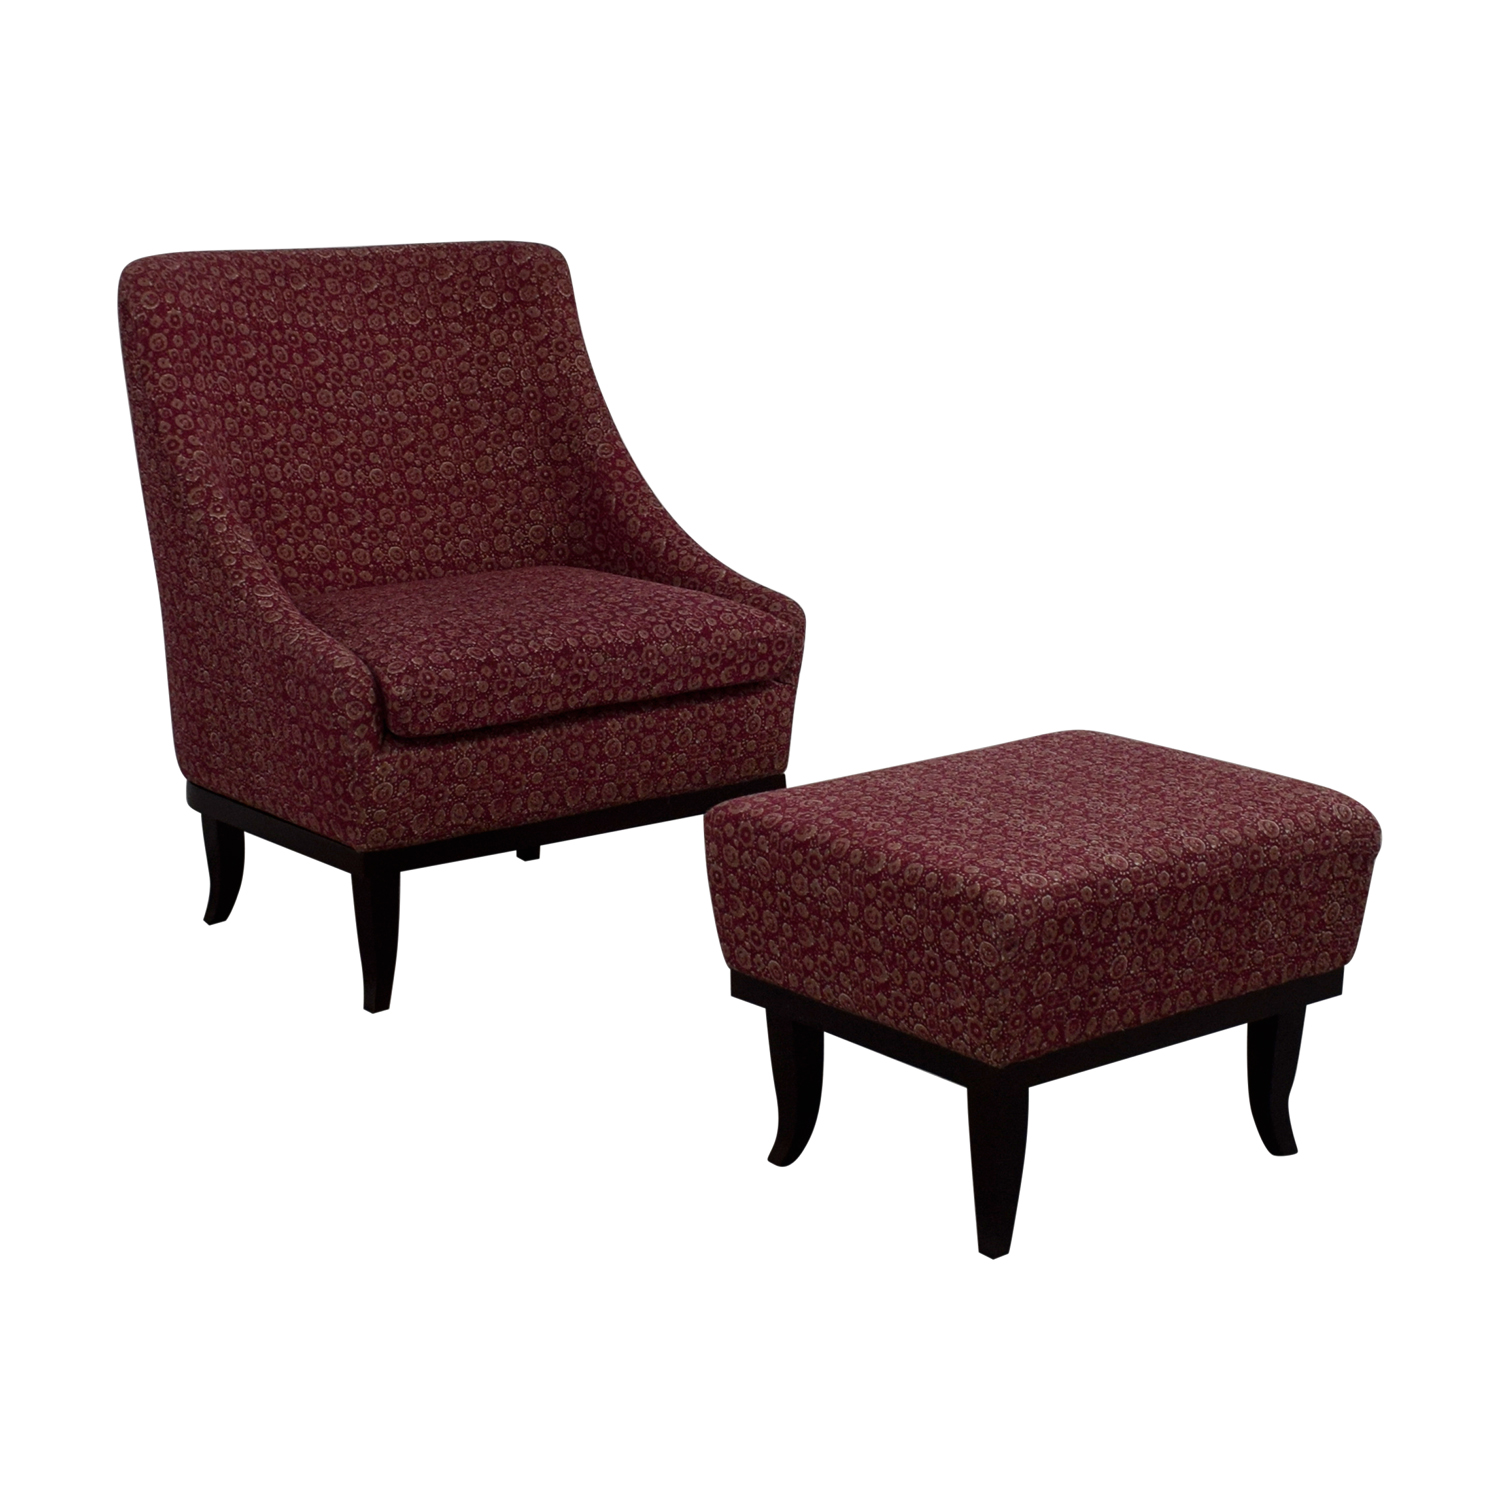 Manor and Mews Cary Burgundy Armchair with Footstool sale